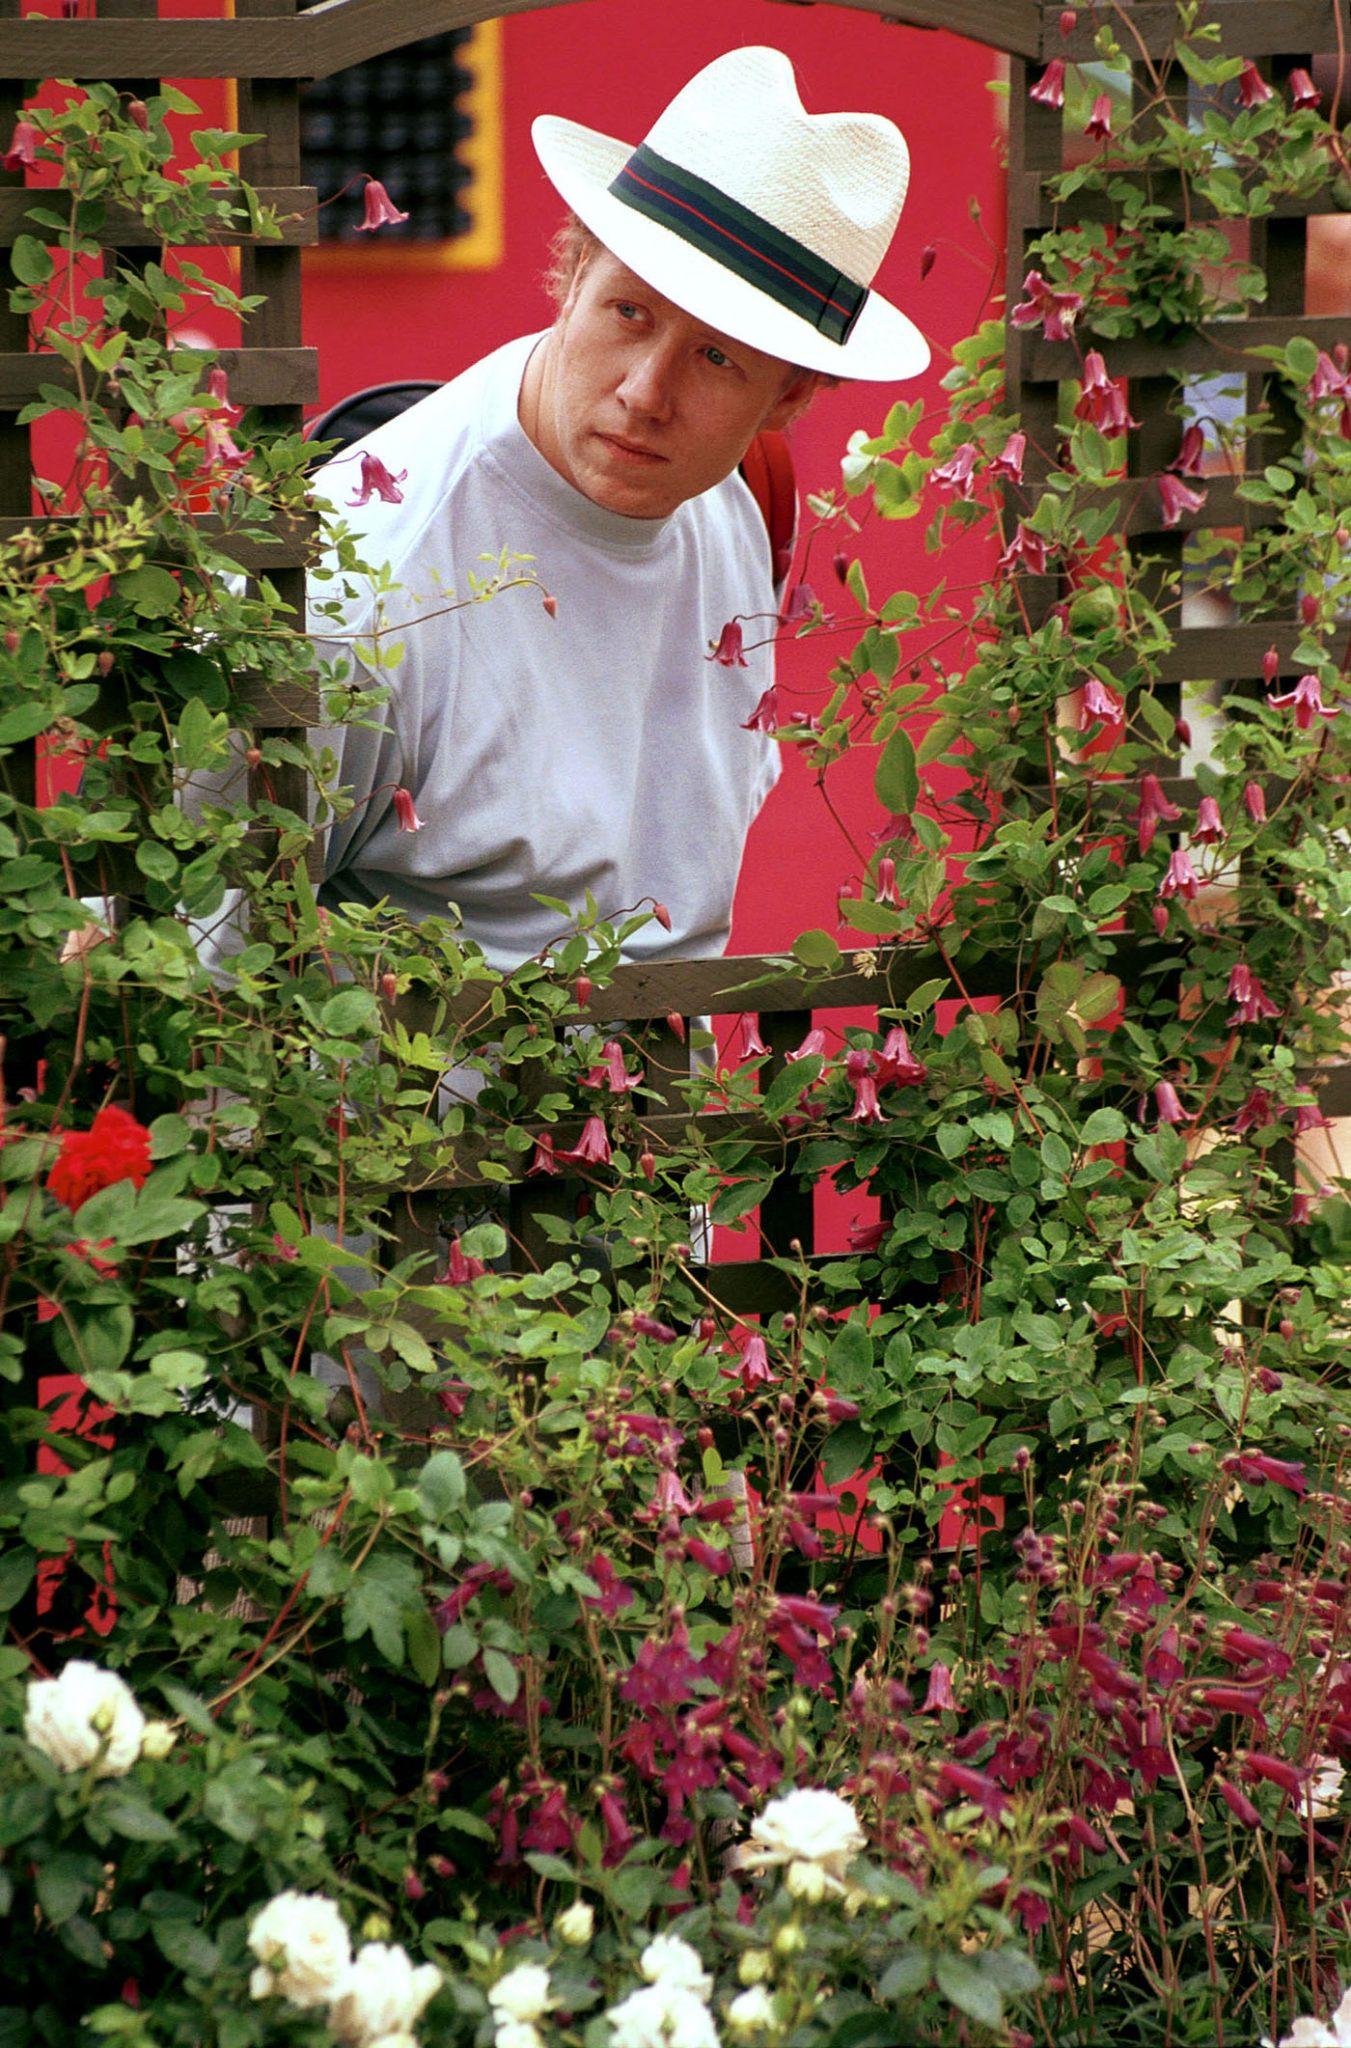 The Hampton Court Flower Show is held in the grounds of Hampton Court Palace